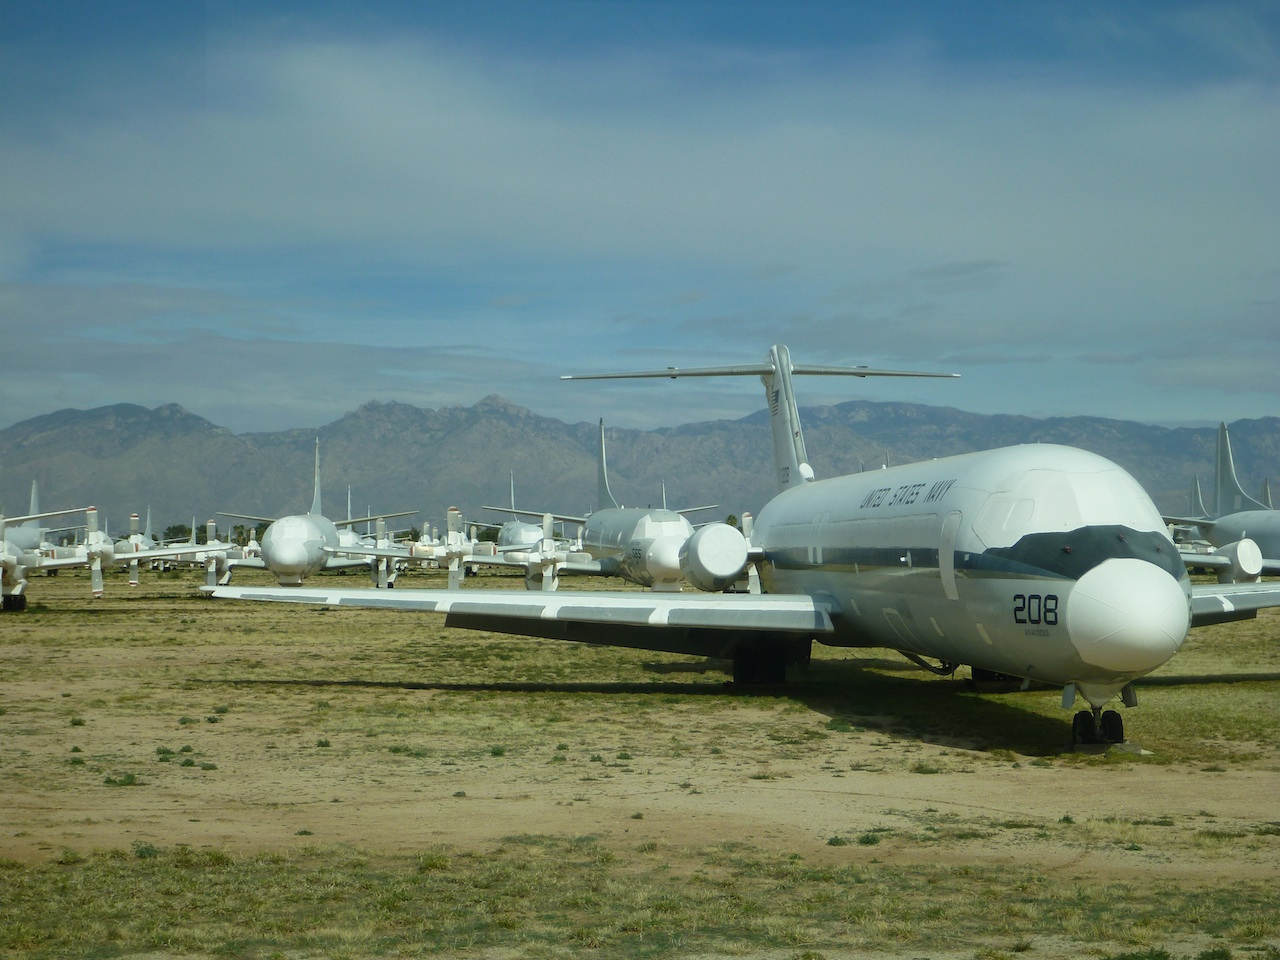 Planes In The Boneyard